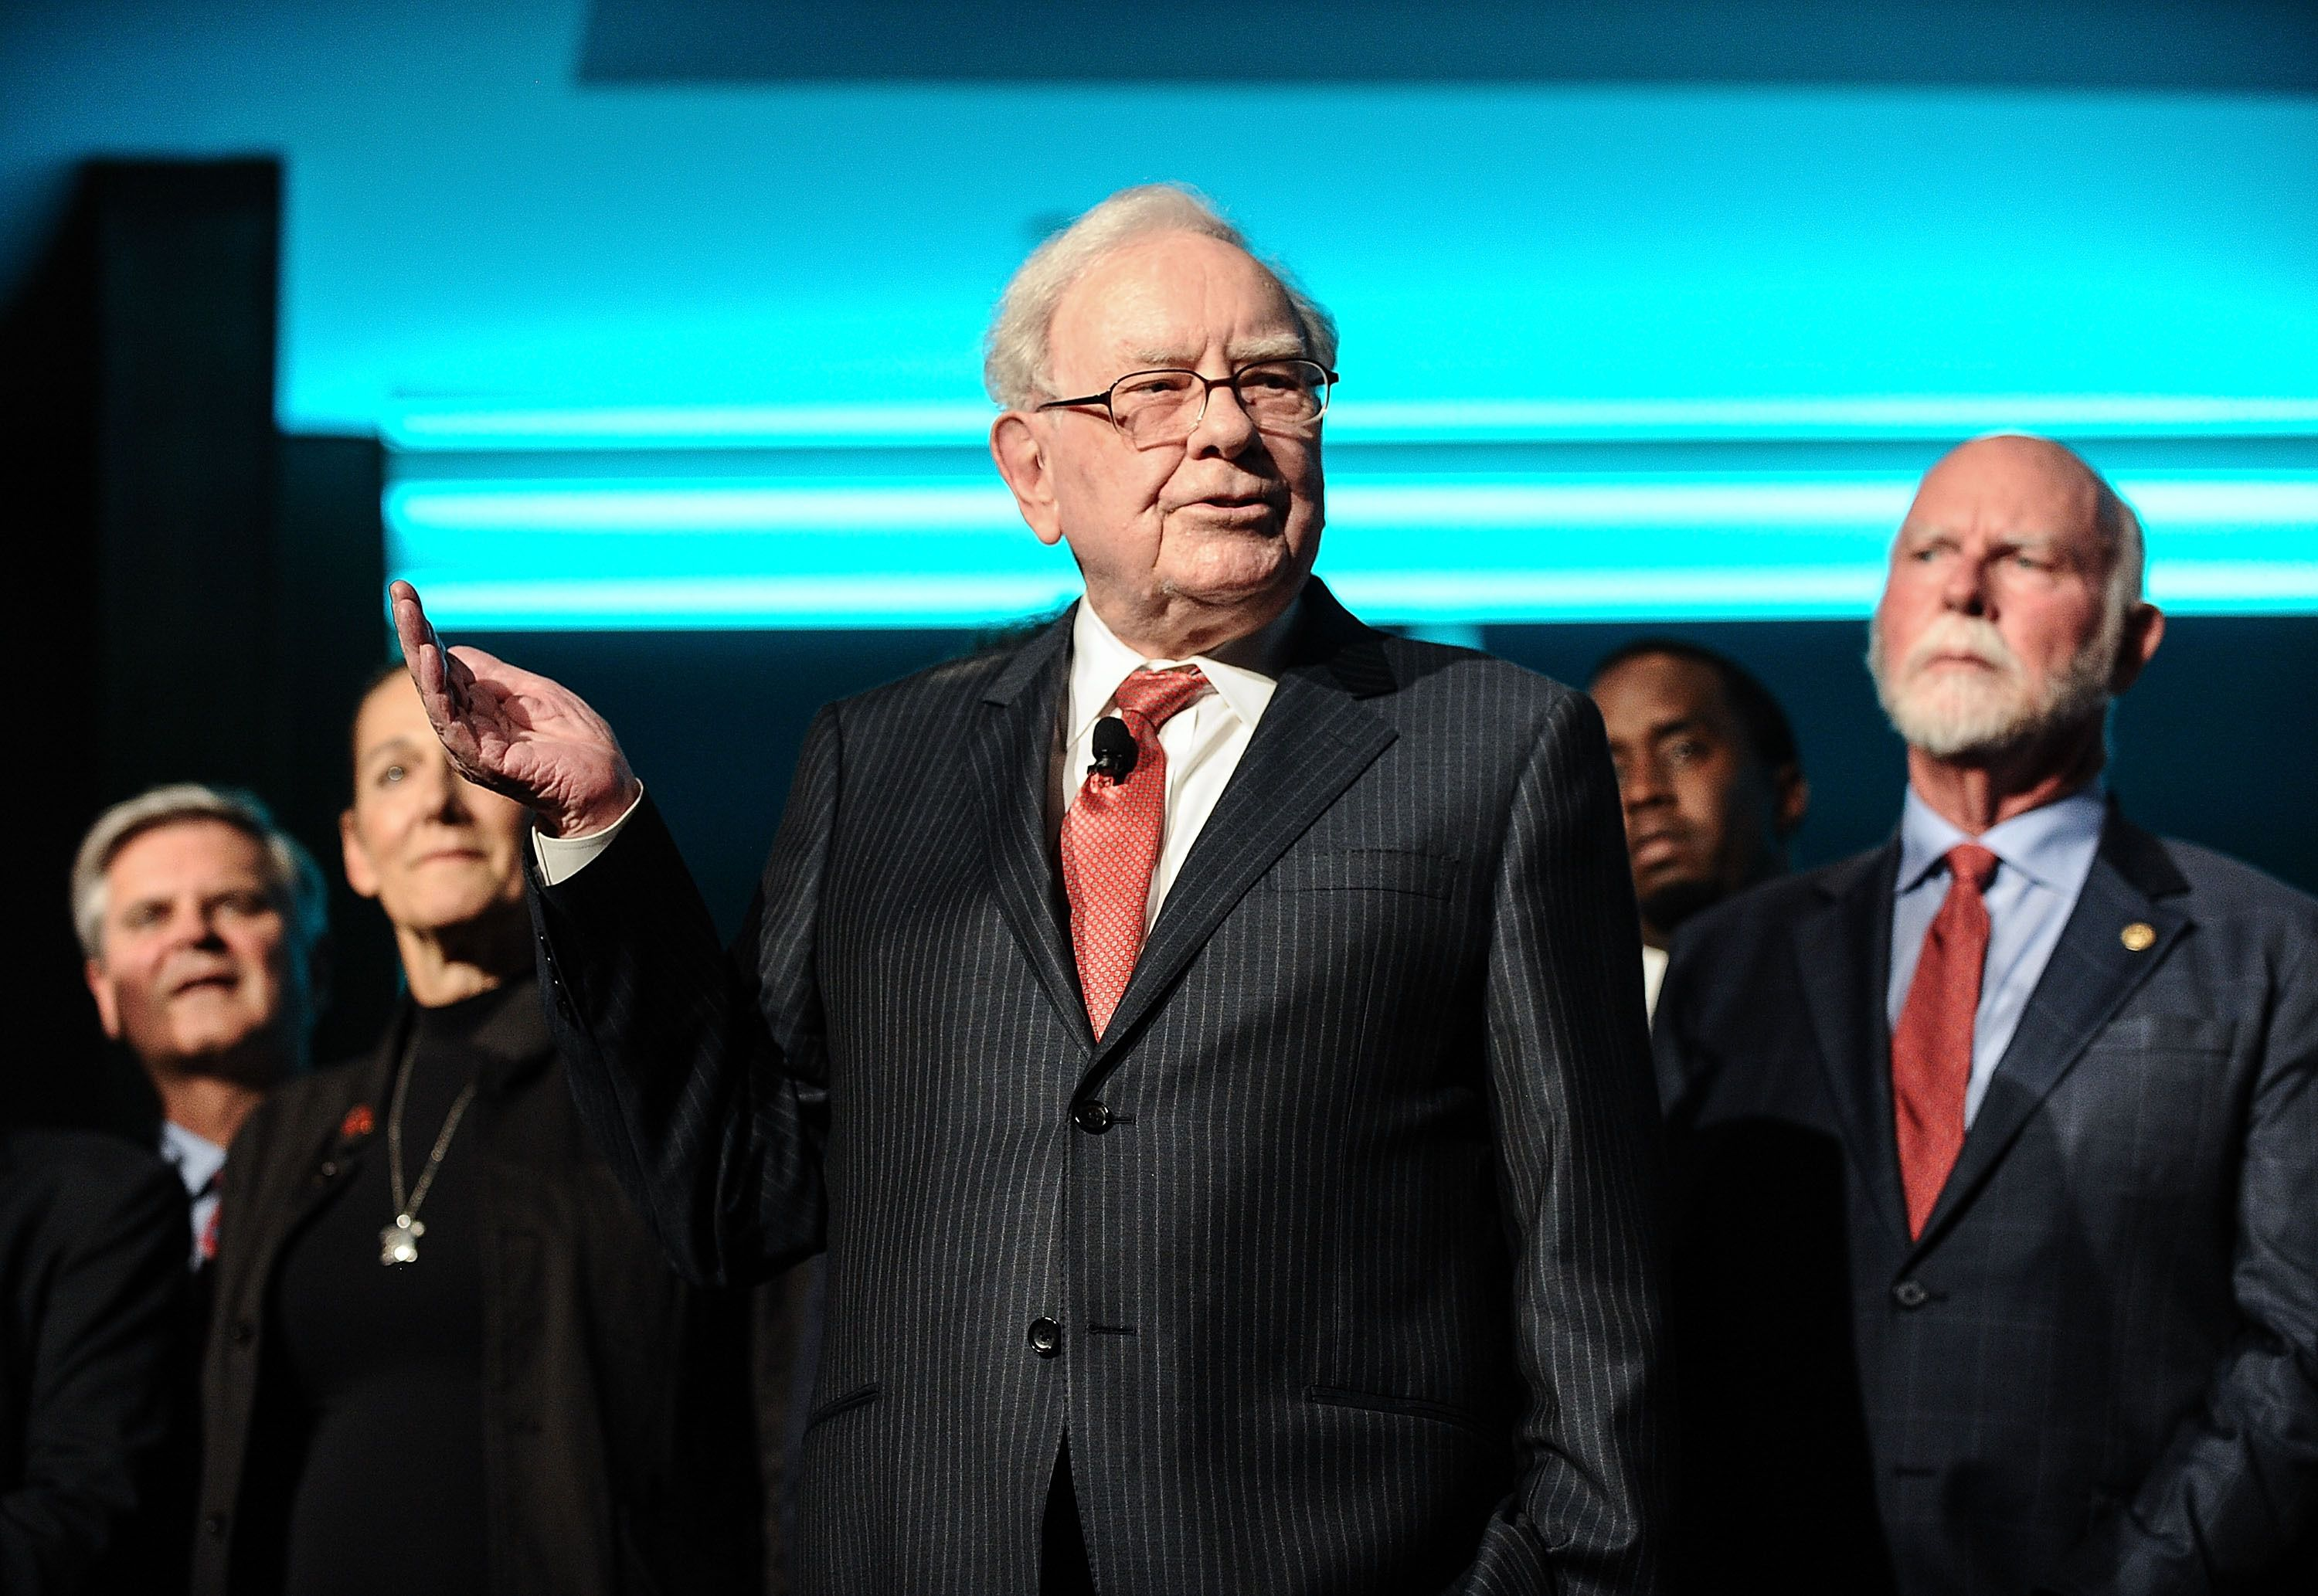 Warren Buffett releases annual letter, reassures investors about future of Berkshire Hathaway - Axios